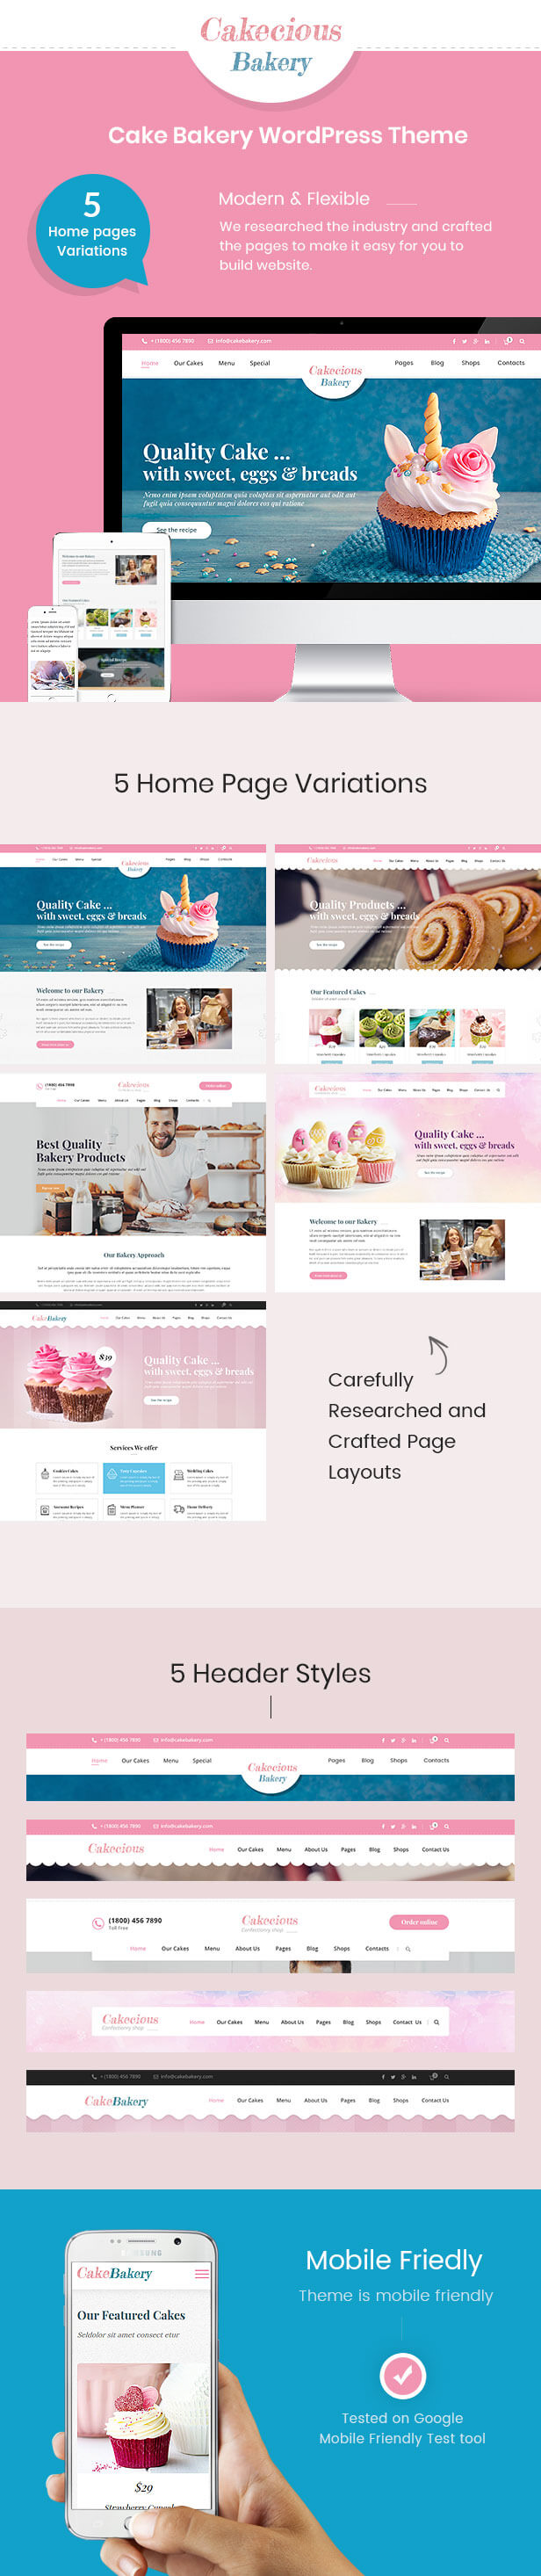 Cakecious - Cake Bakery Food WordPress Theme - 3